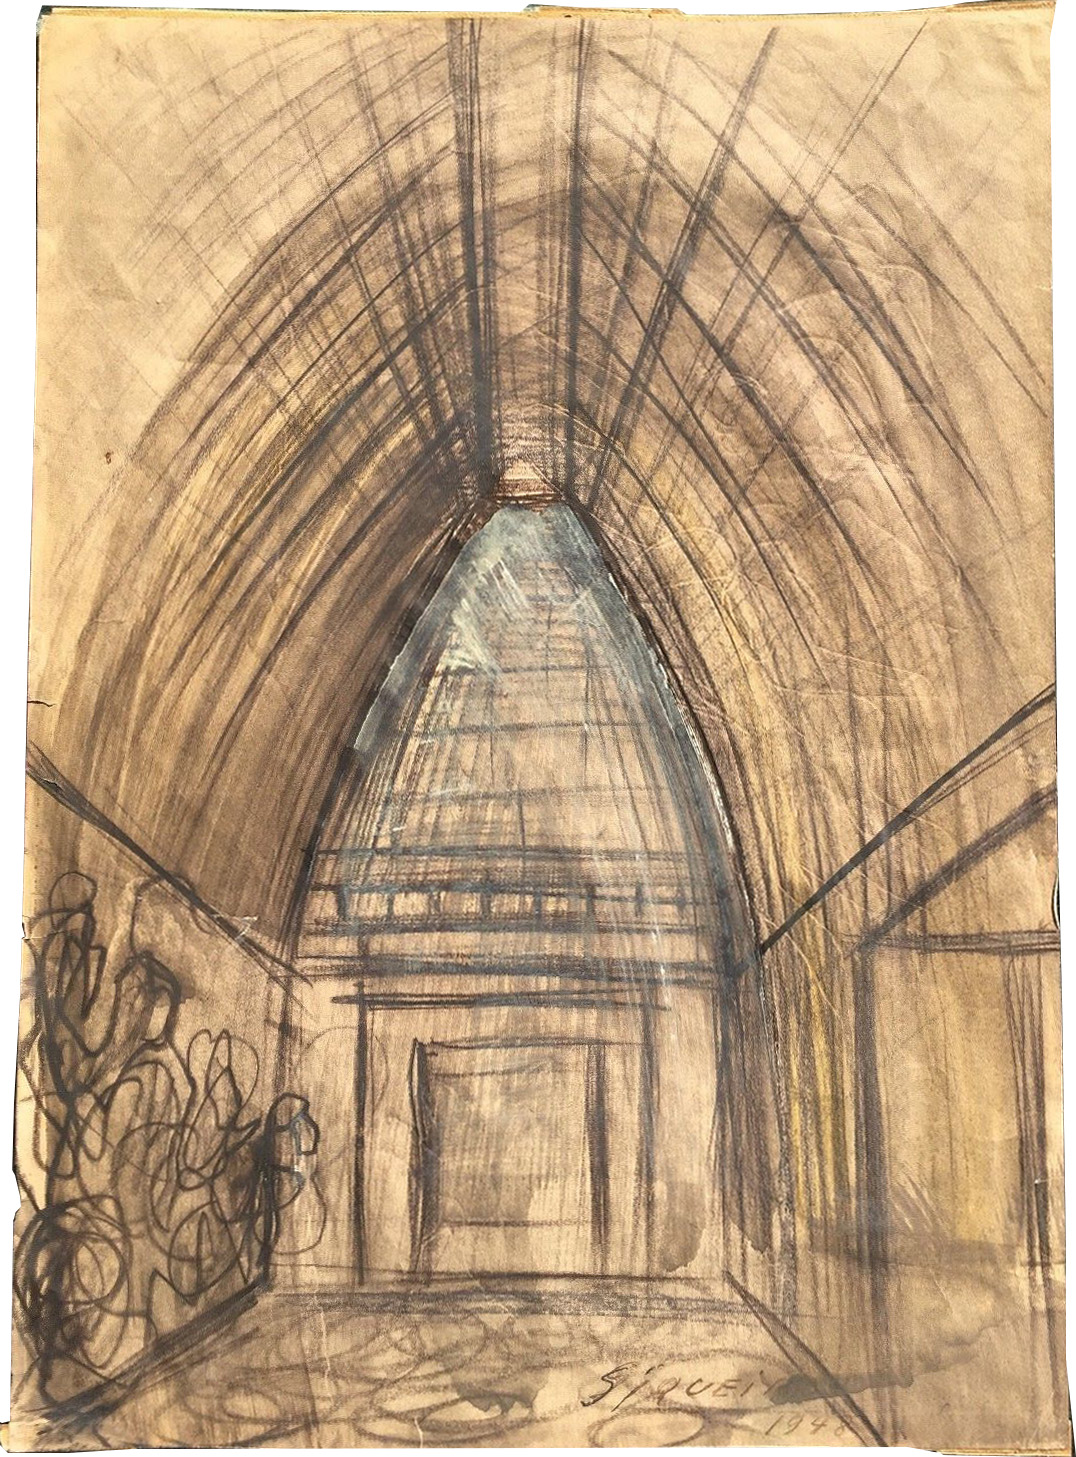 Chapel Mural Study Drawing by David Alfaro Siqueiros